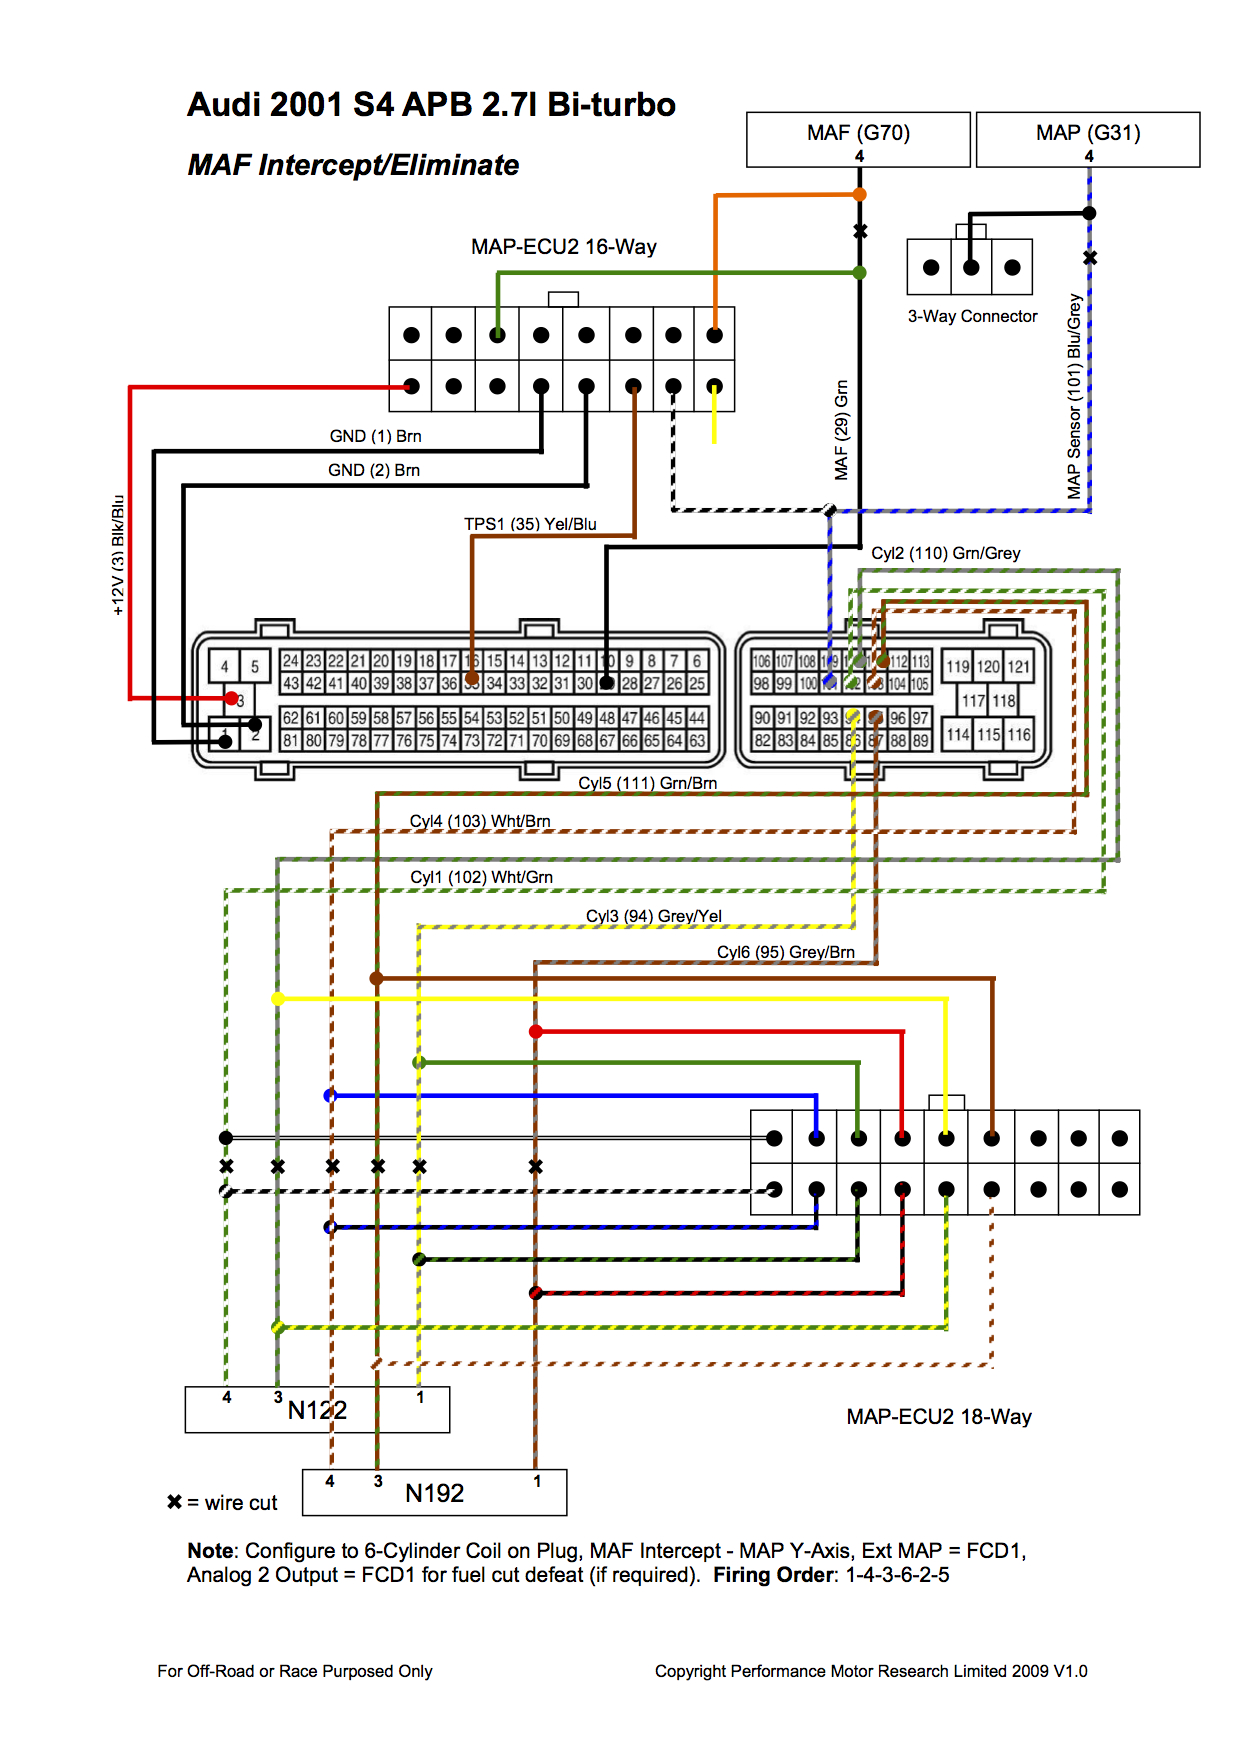 Audi S4 20011 ecu wiring diagram paccar ecu wiring diagram \u2022 wiring diagrams j 2003 nissan 350z radio wiring diagram at honlapkeszites.co